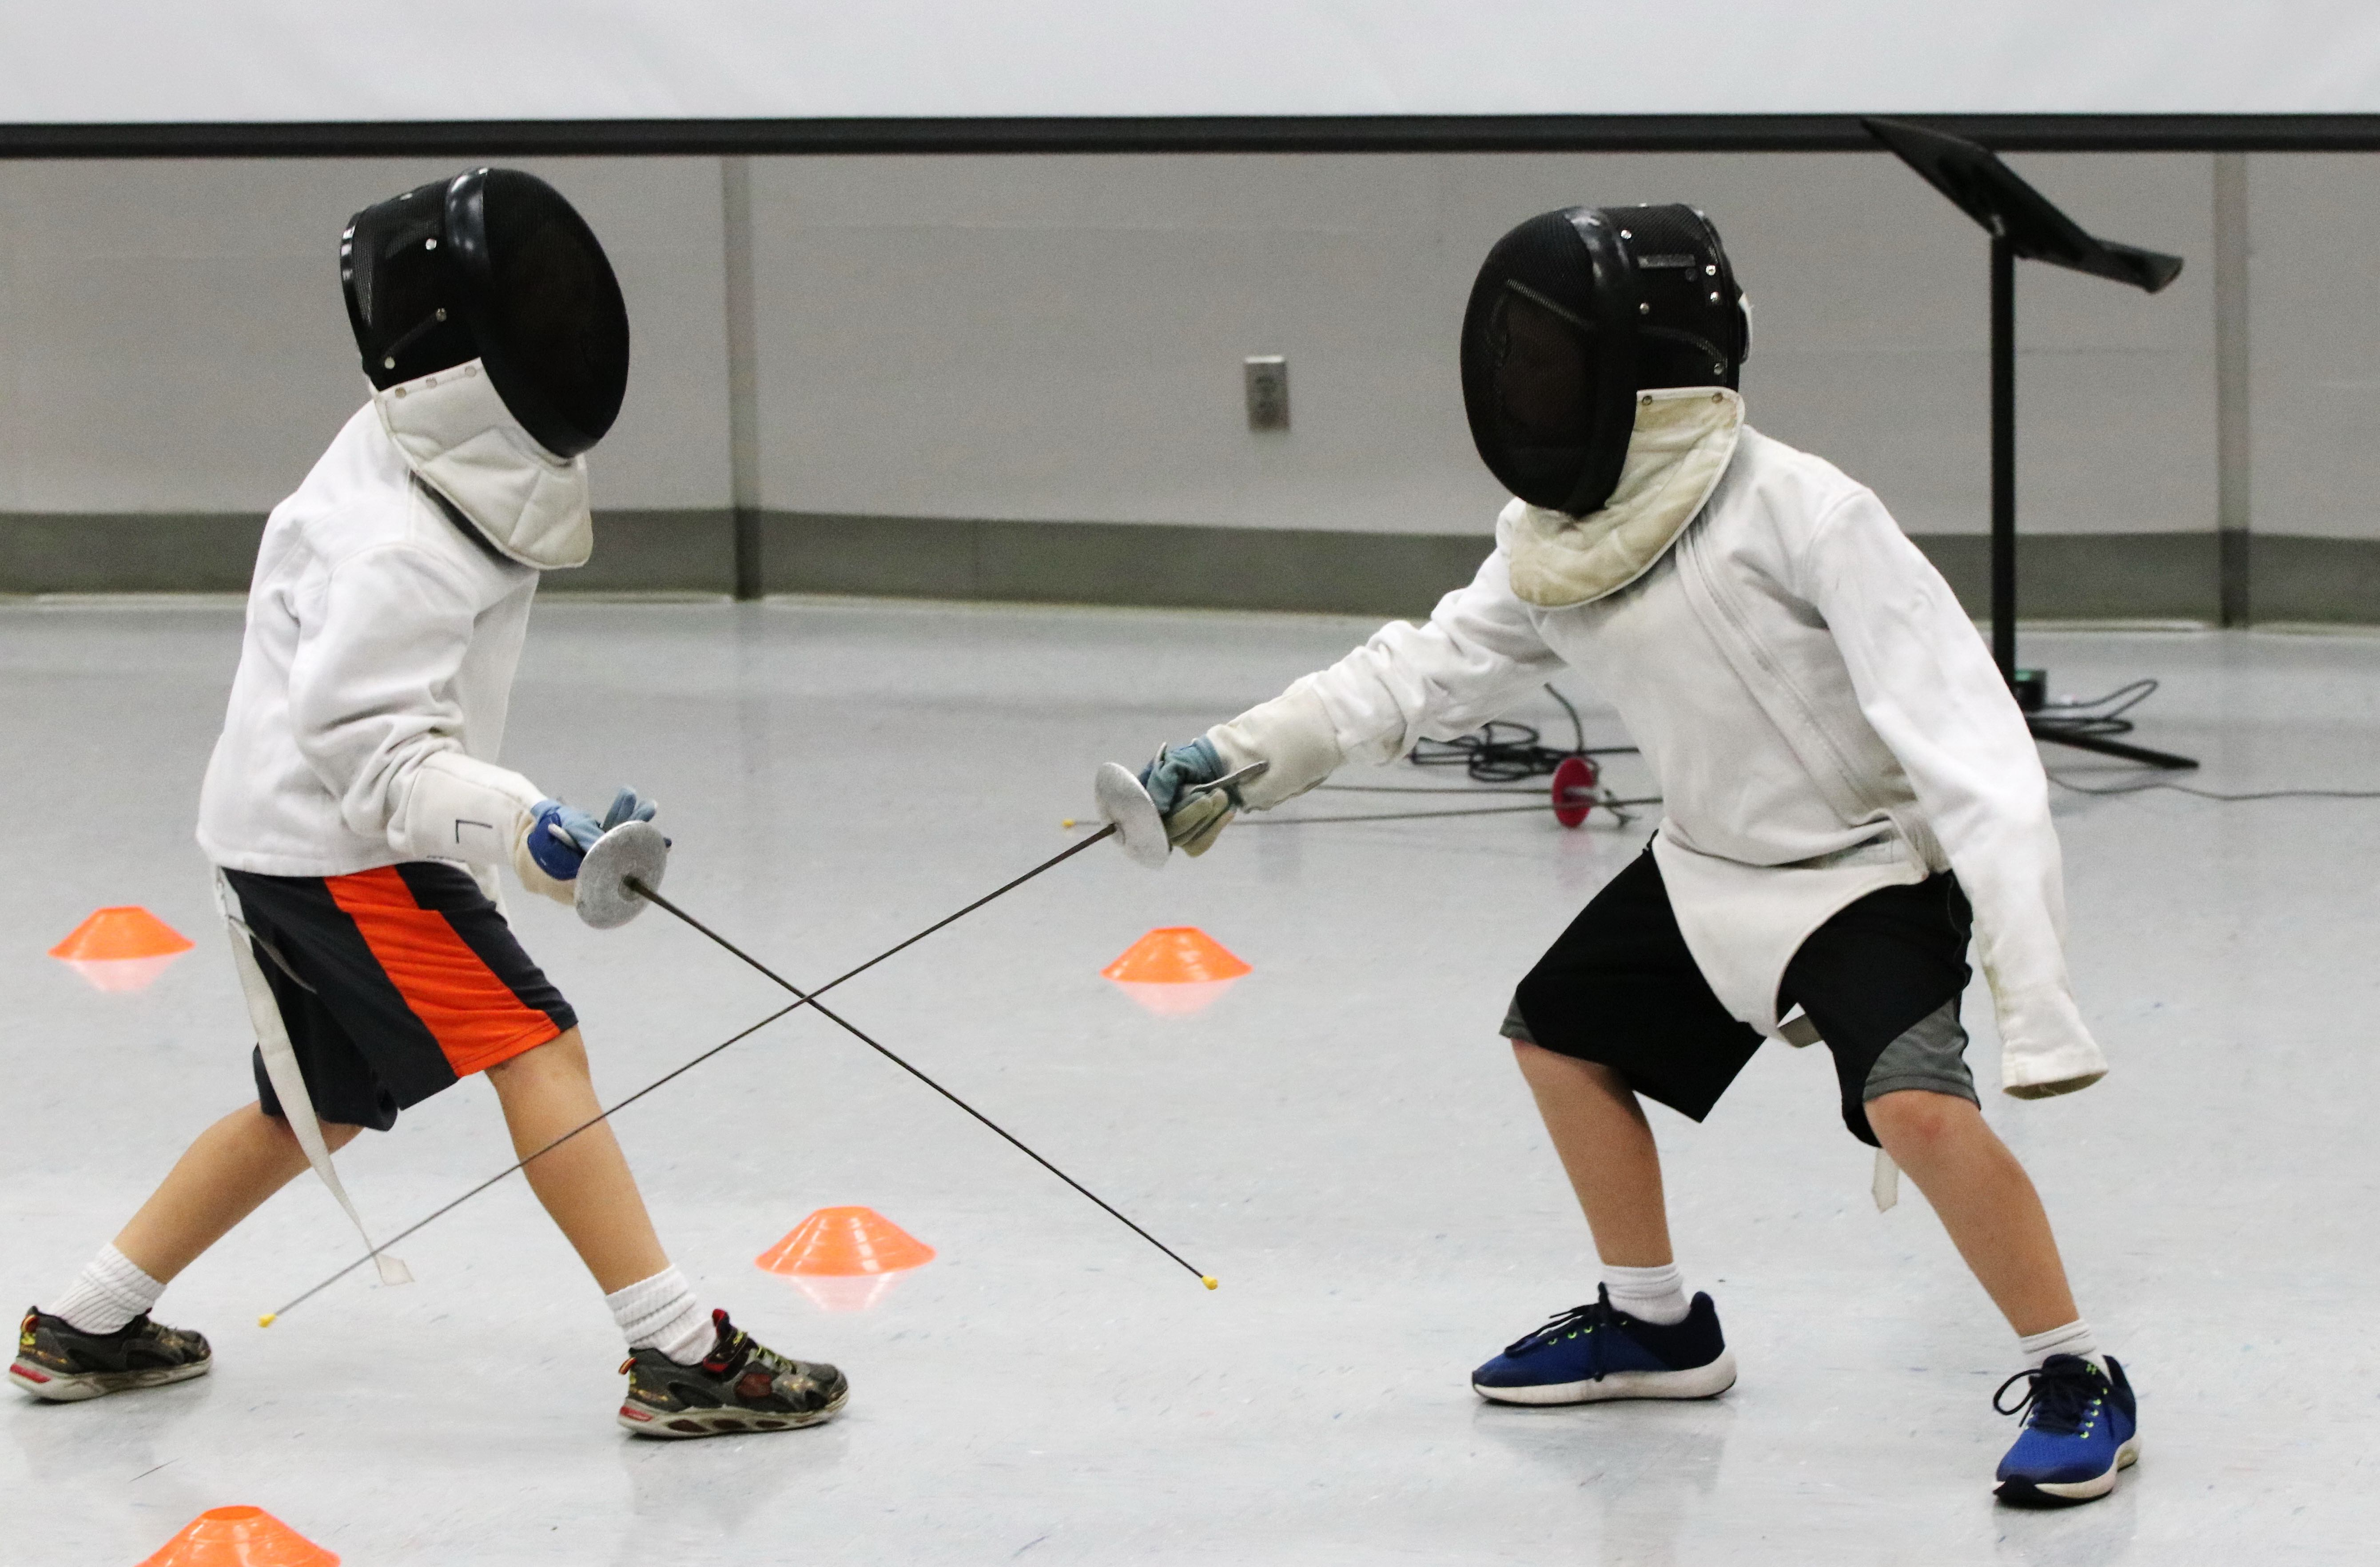 How to get started in fencing. What parents should be looking for in a fencing club or program.